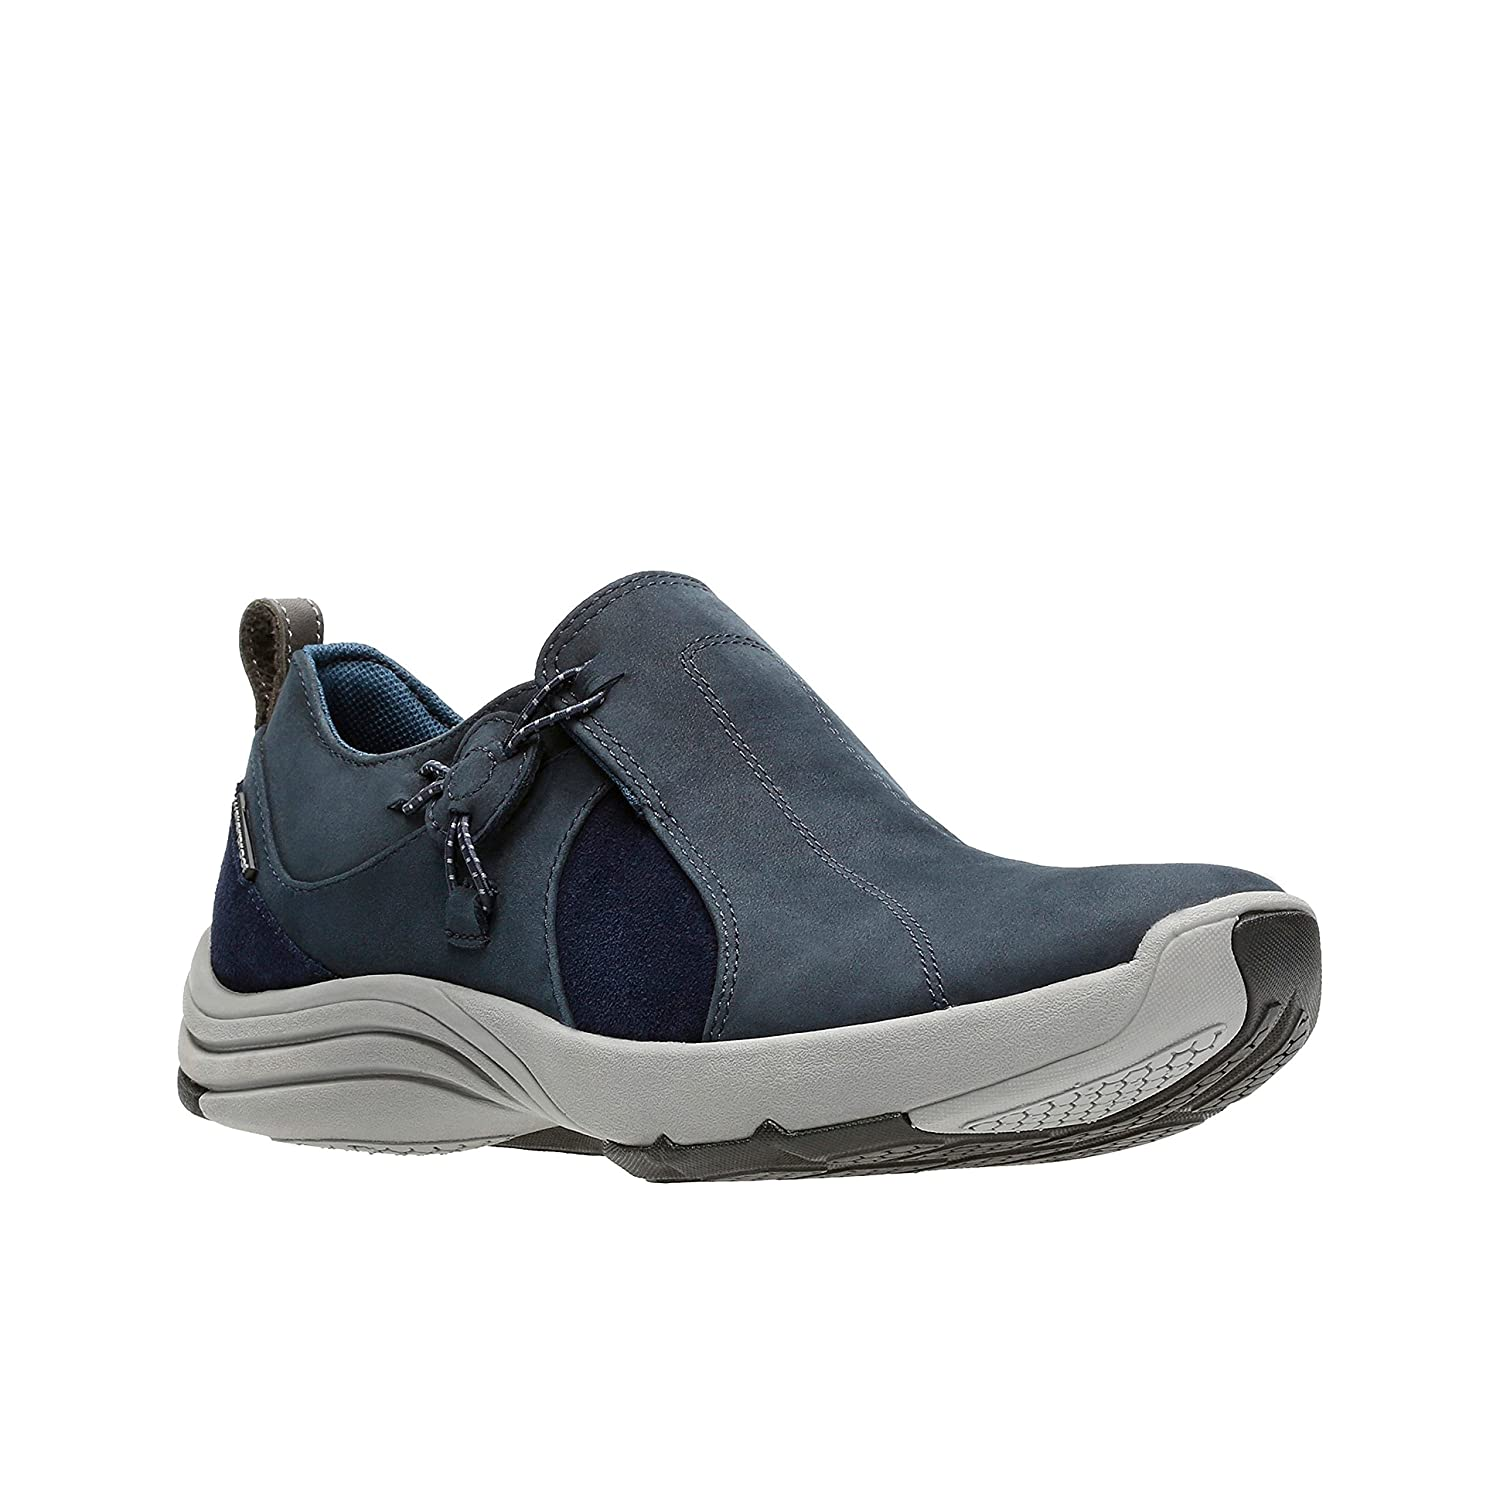 CLARKS Womens Wave River Waterproof Sneaker B071JDCKMF 7 B(M) US|Navy